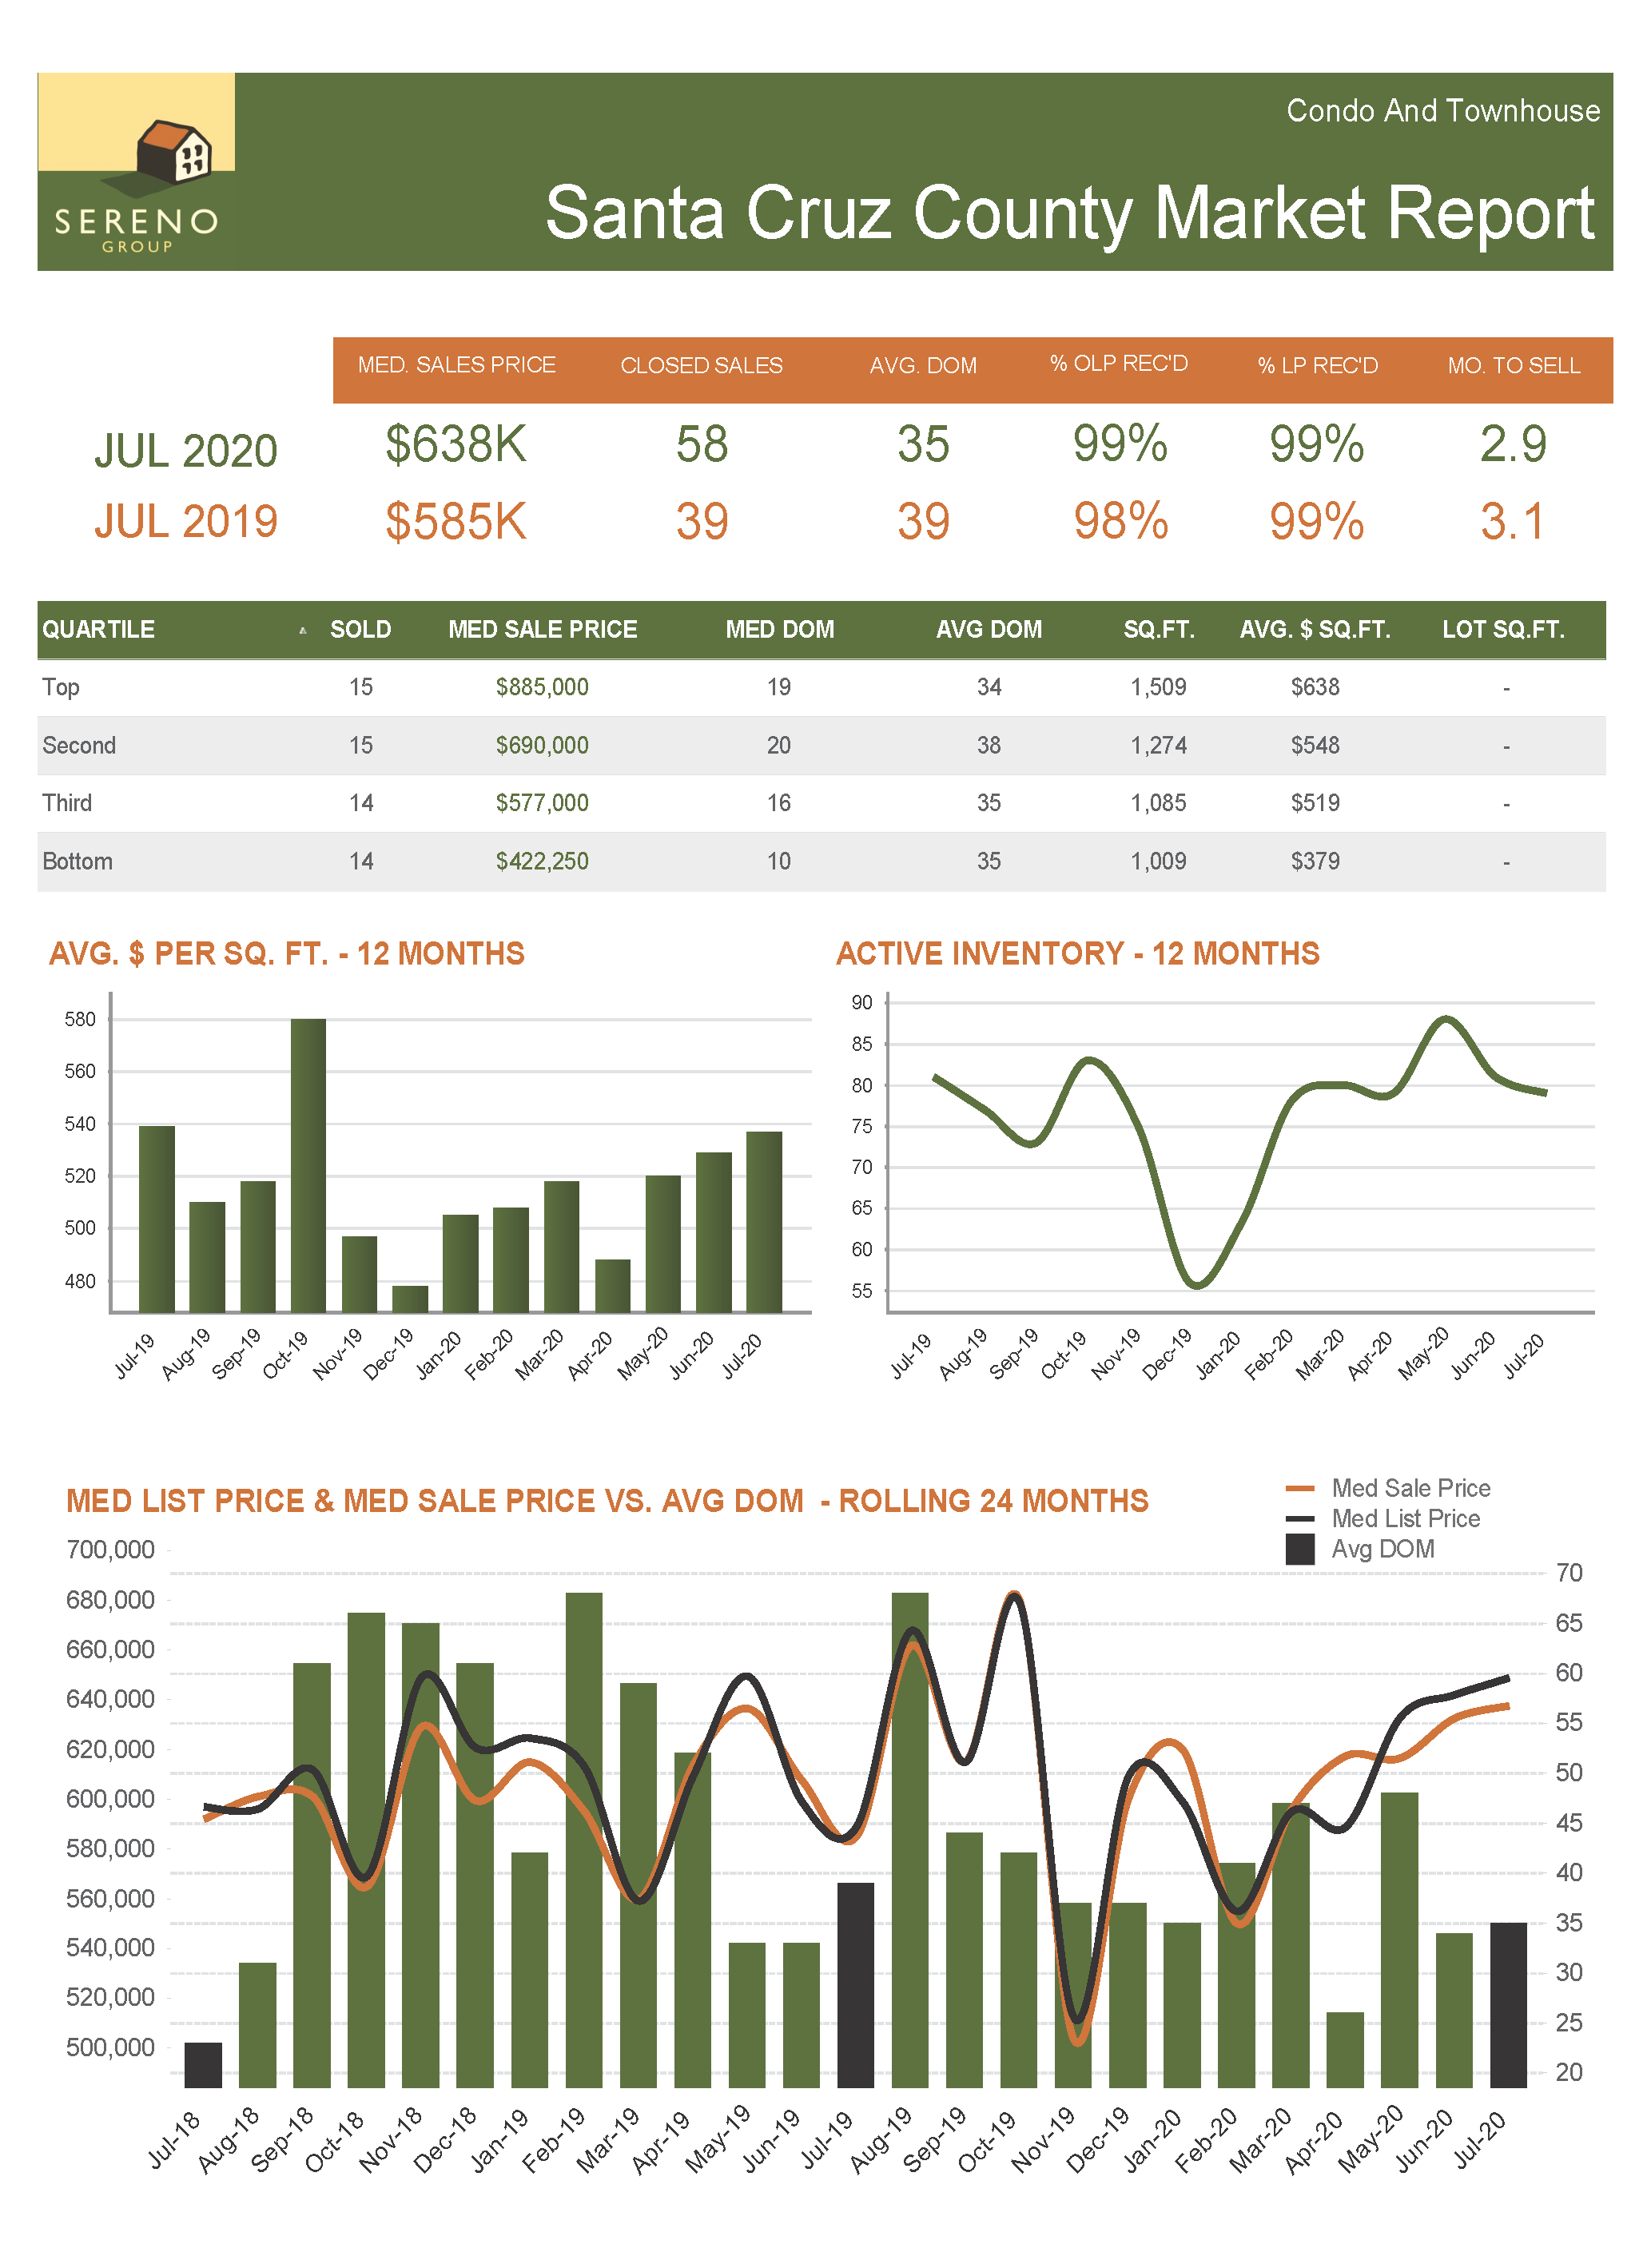 Santa Cruz County C_TH Market Report - Jul 2020